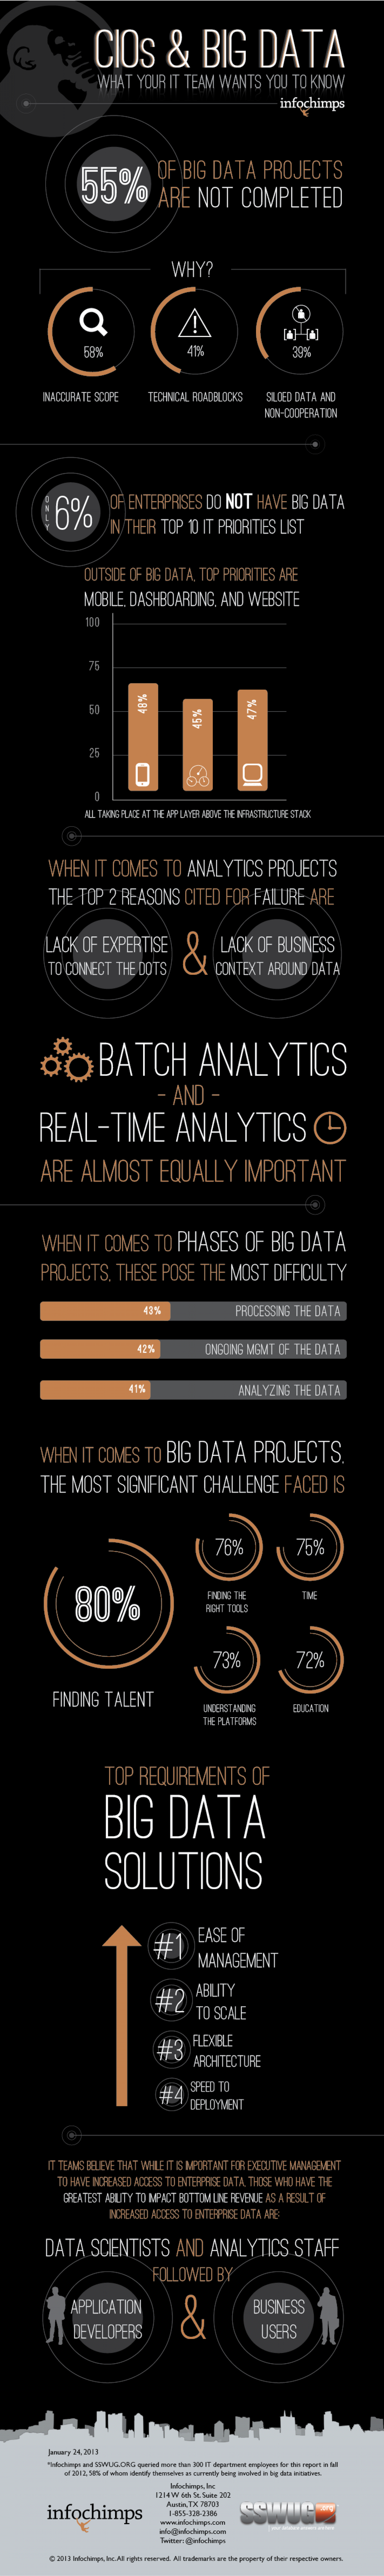 CIOs and Big Data Infographic